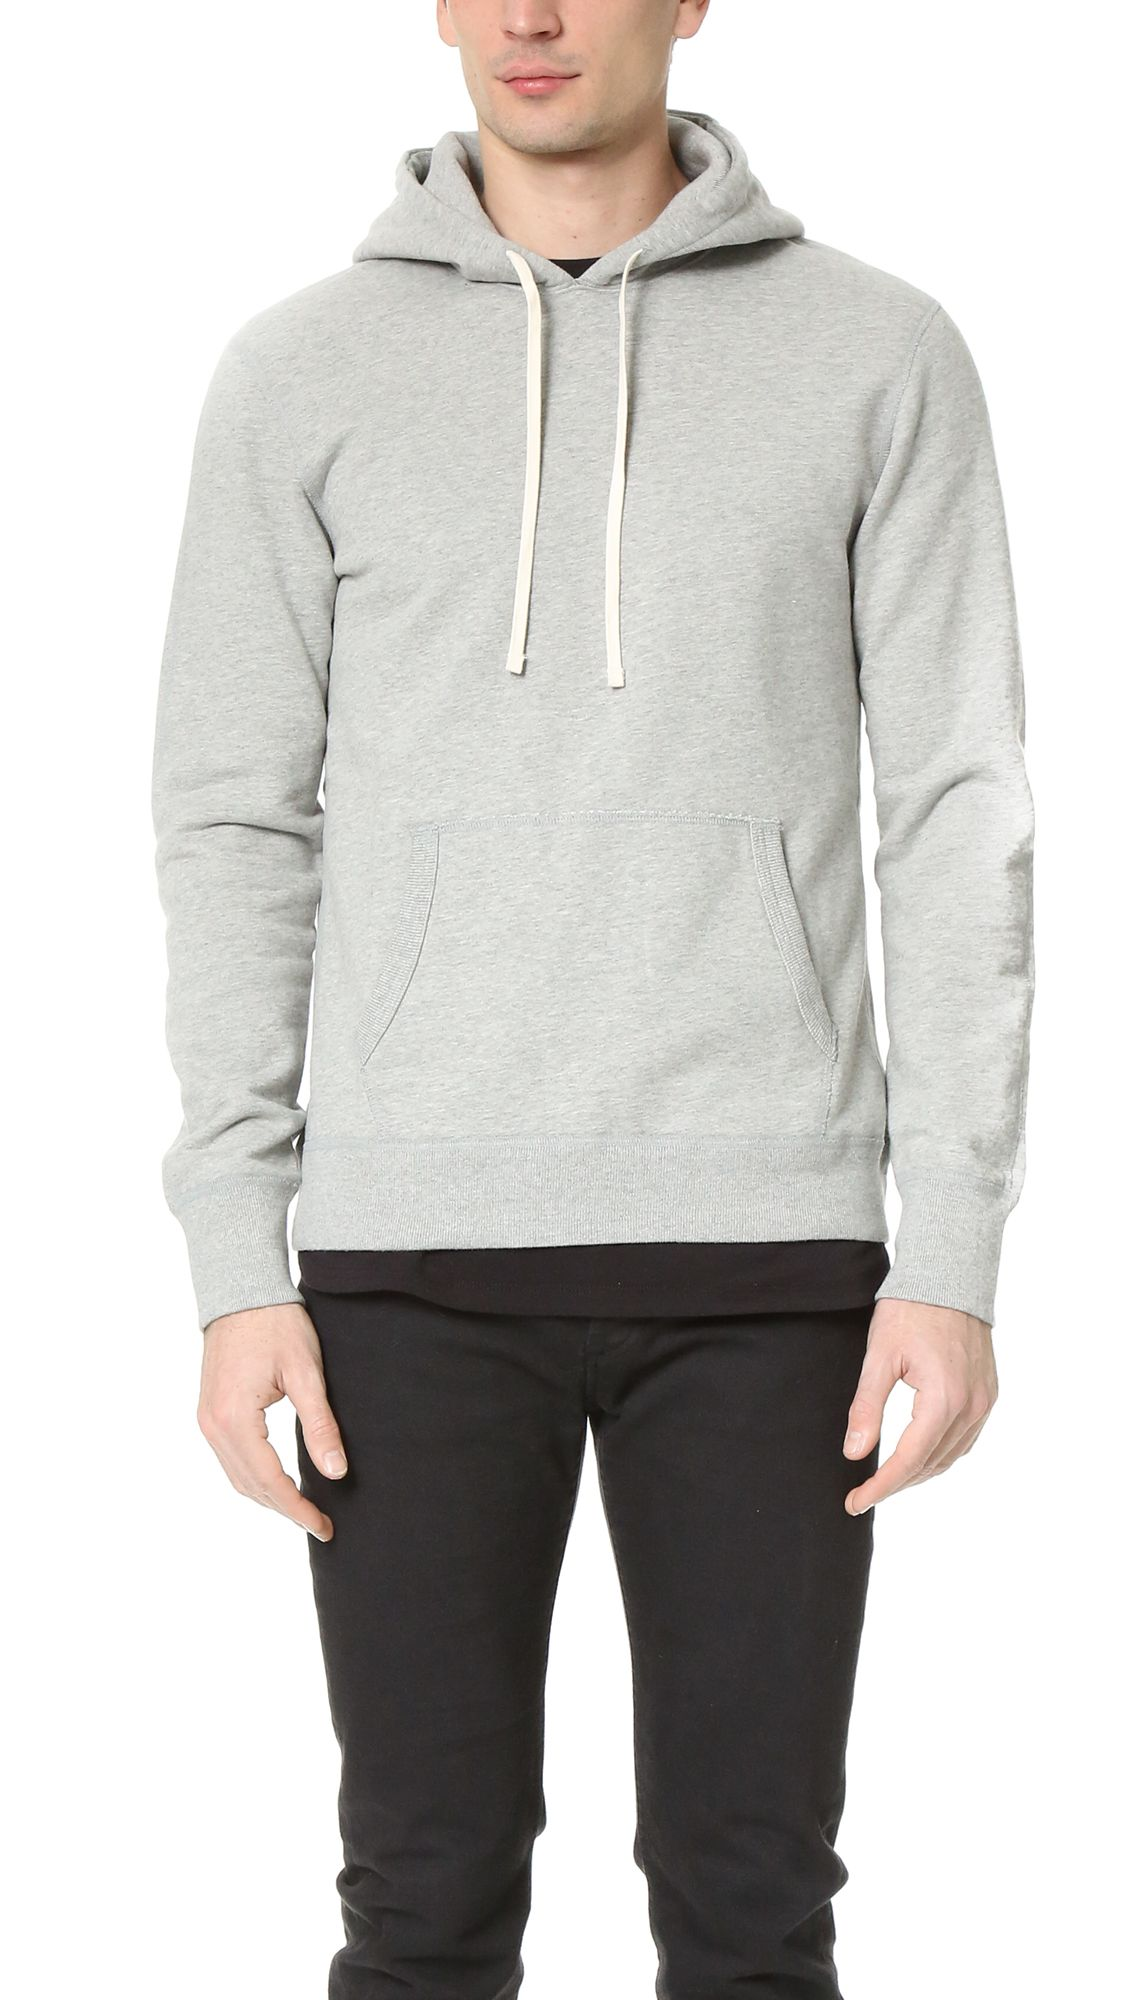 REIGNING CHAMP Mid Weight Terry Pullover Hoodie.  reigningchamp  cloth   hoodie 9a2cdbcecf6